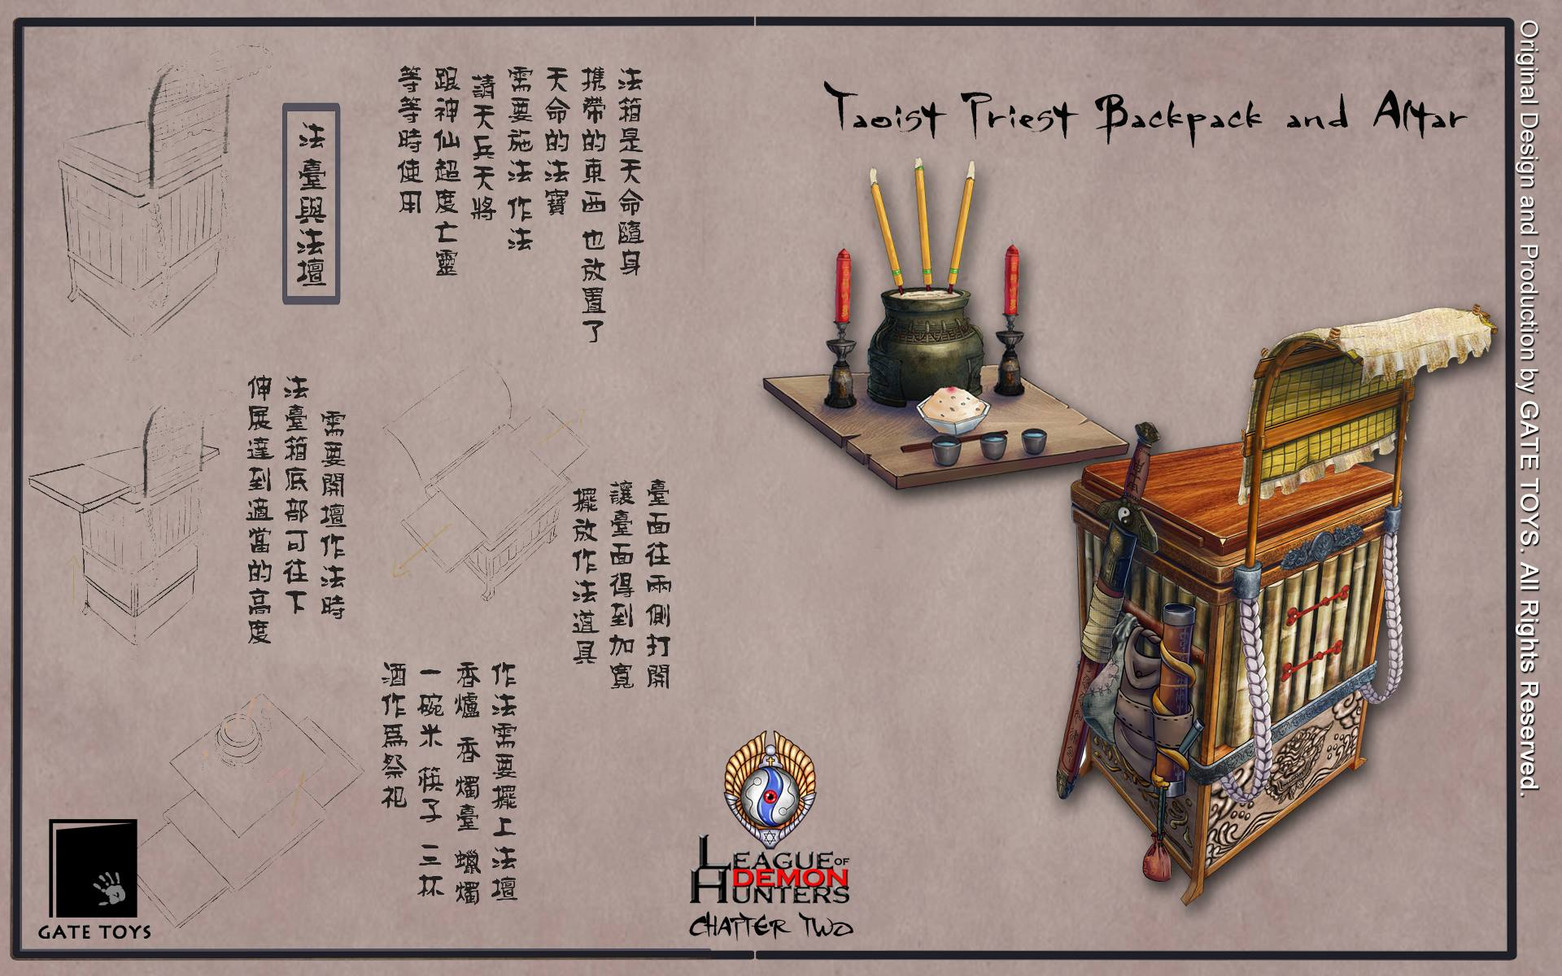 Taoist Priest's backpack and Altar, in which contains all the equipment a Daoshi needs to perform his sorcery such as summon heavenly troops, put the dead / undead to rest in peace.